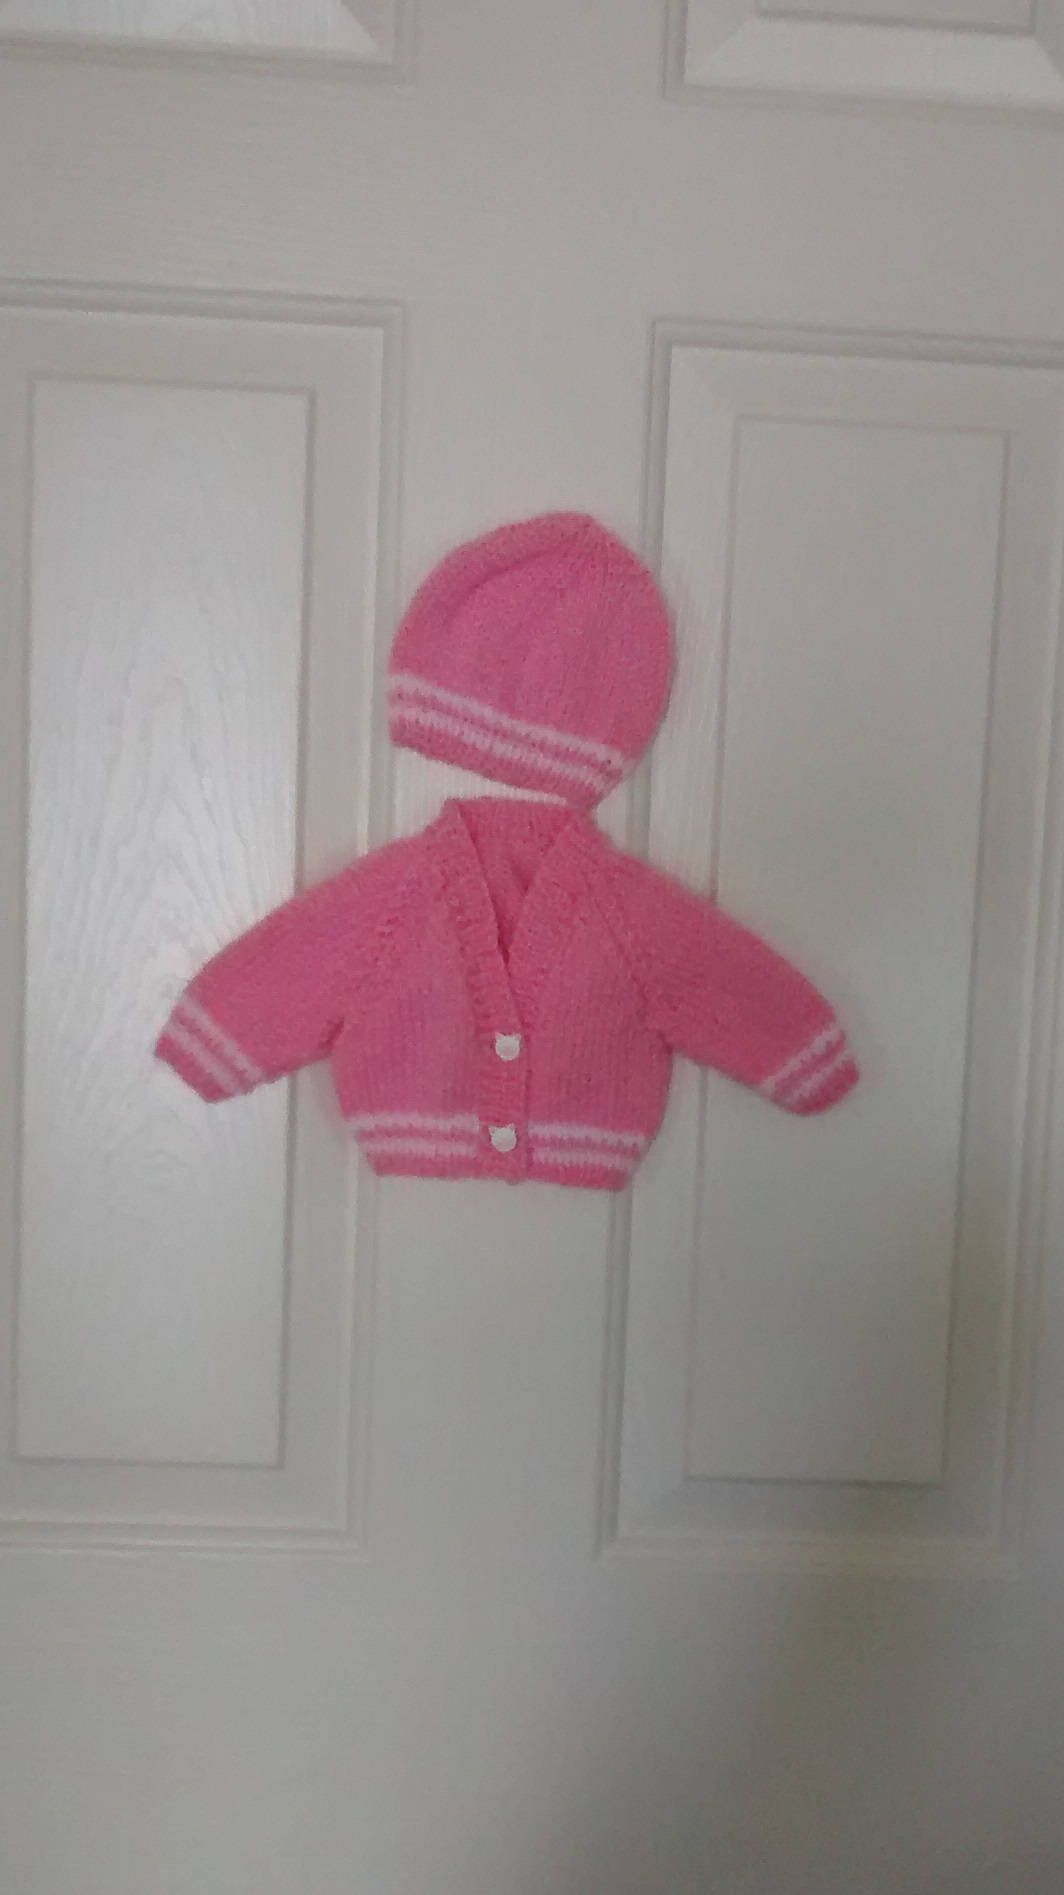 de2bd5d8d Hand Knitted Pink and White Preemie Baby Sweater and Hat Set with ...